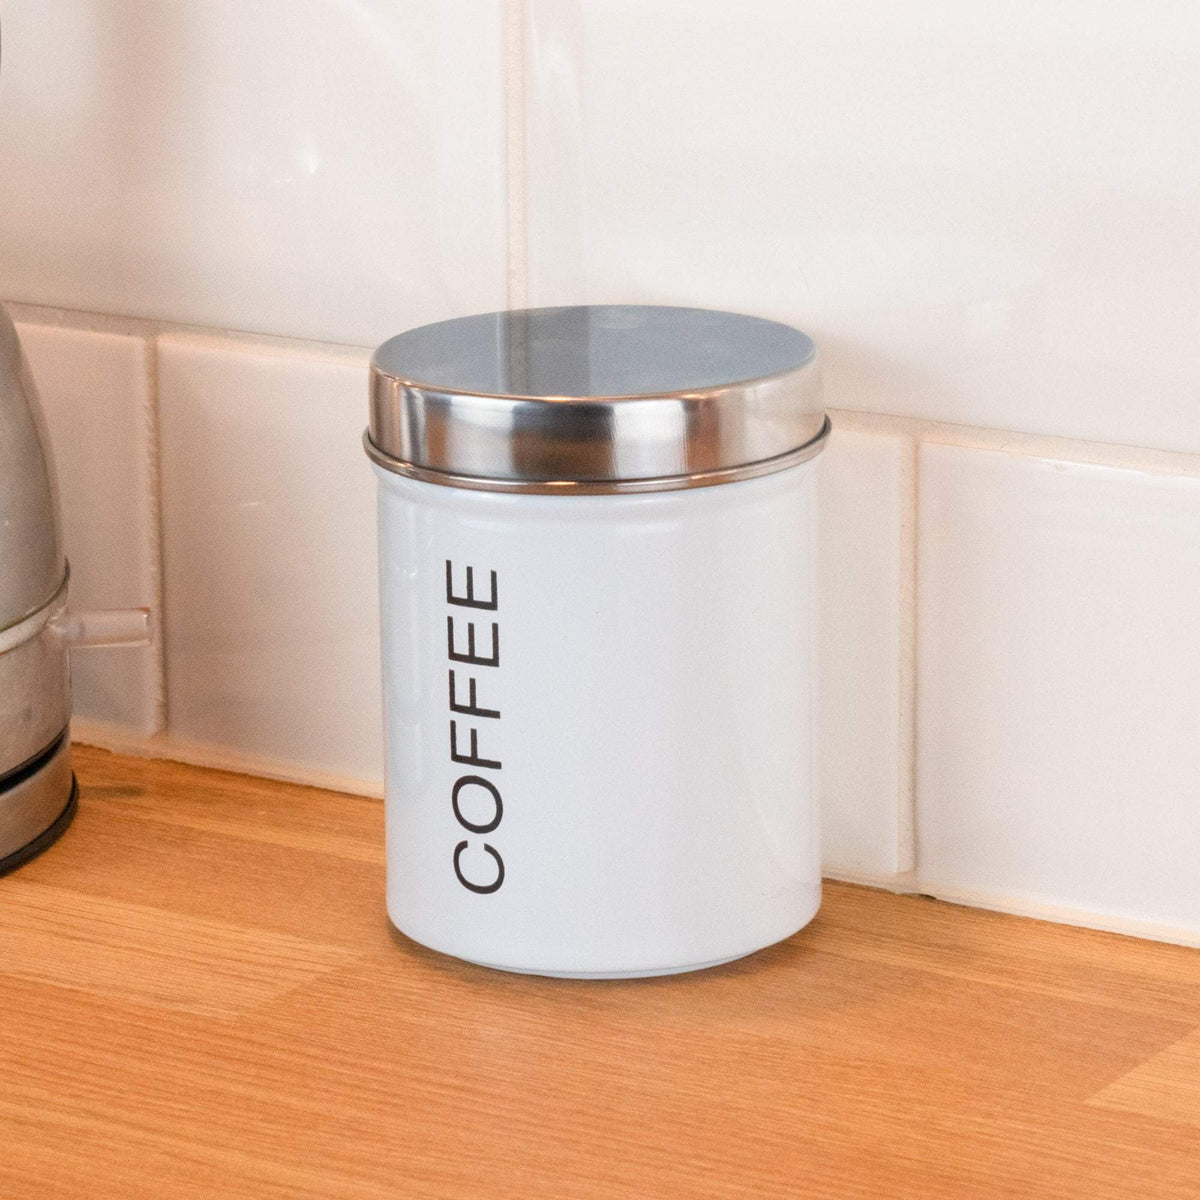 Harbour Housewares Metal Coffee Canister - White